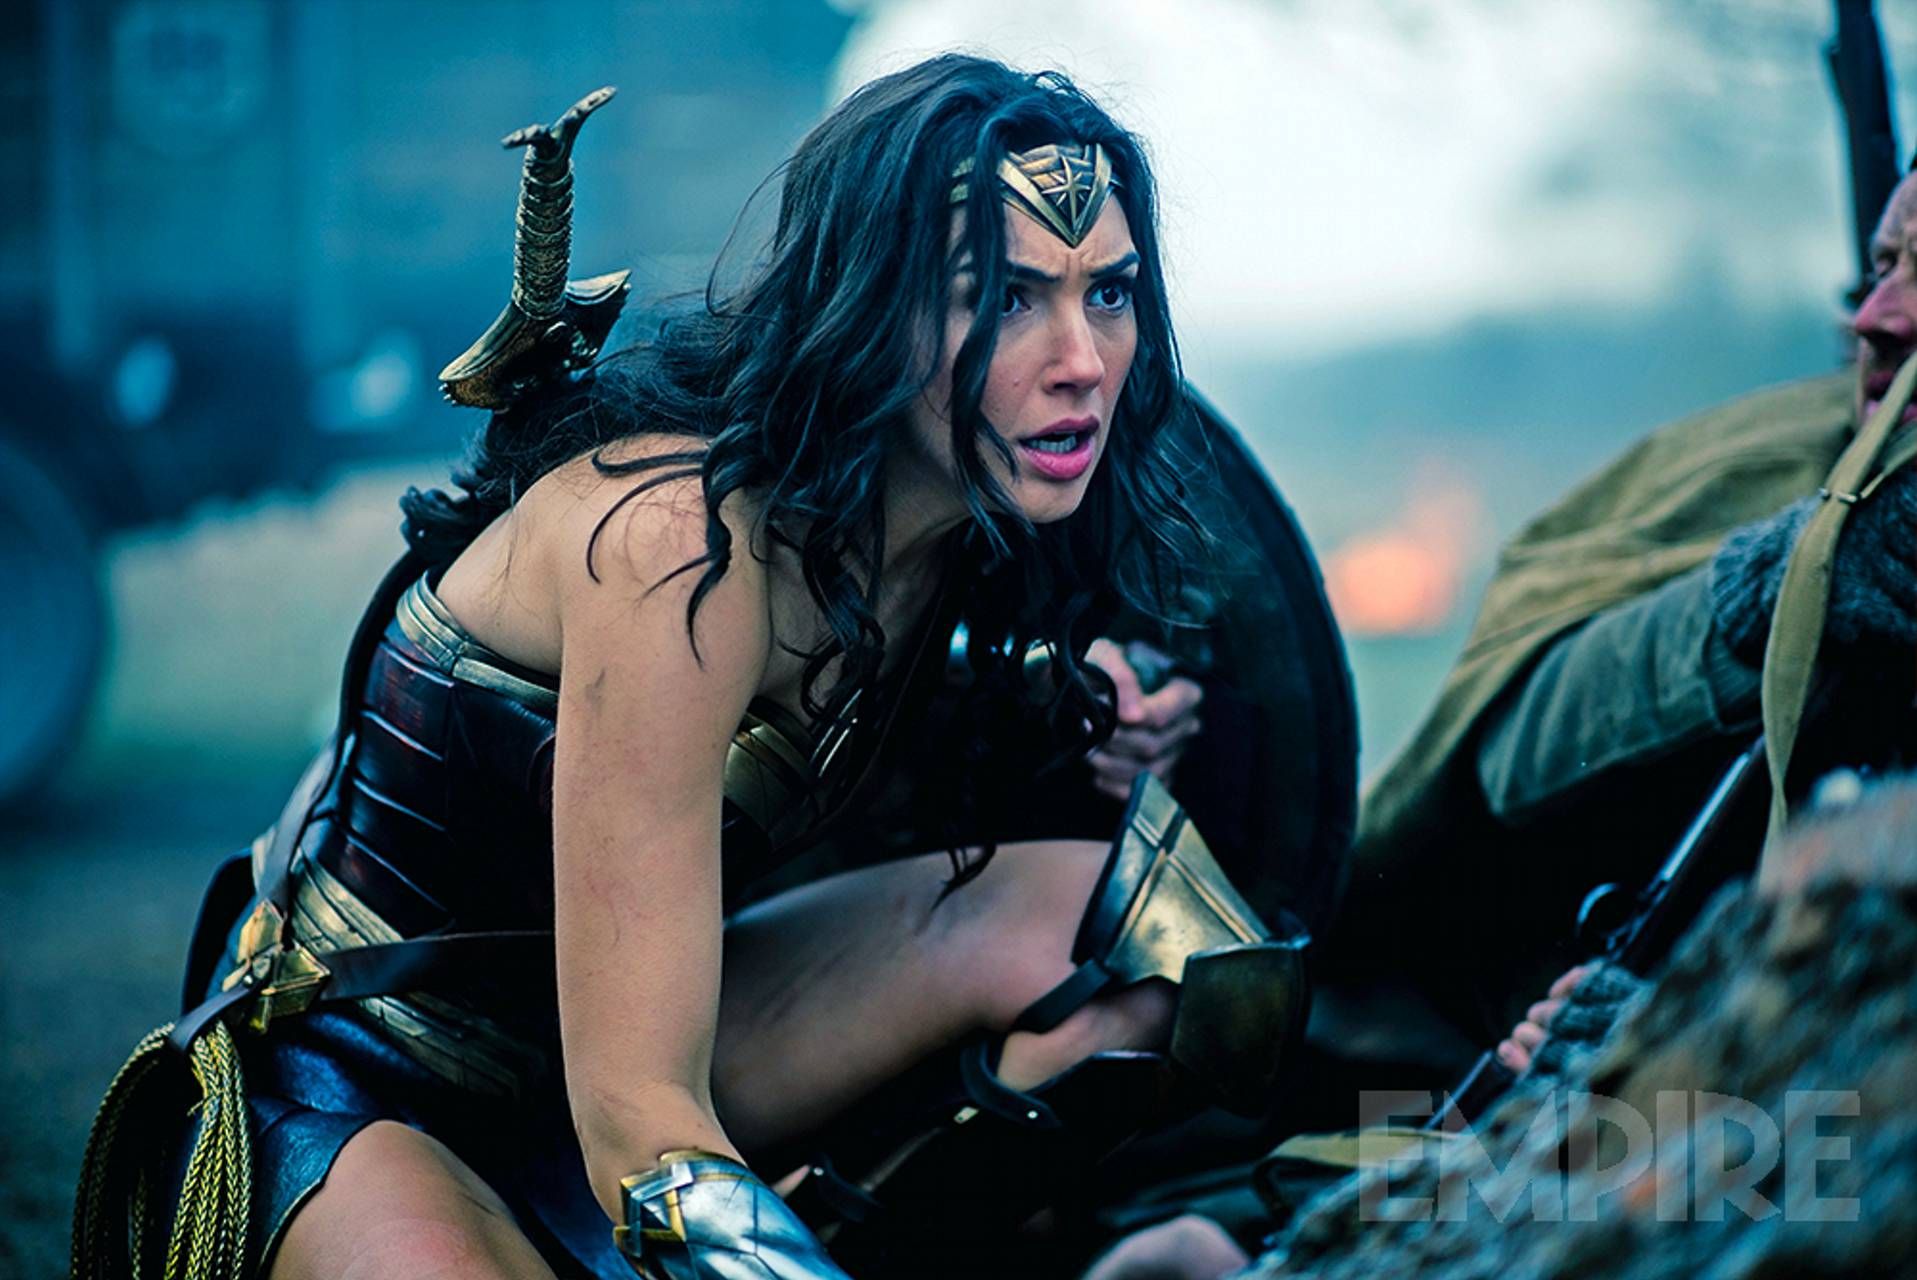 Wonder Woman, played by Gal Gadot, crouching on a battlefield